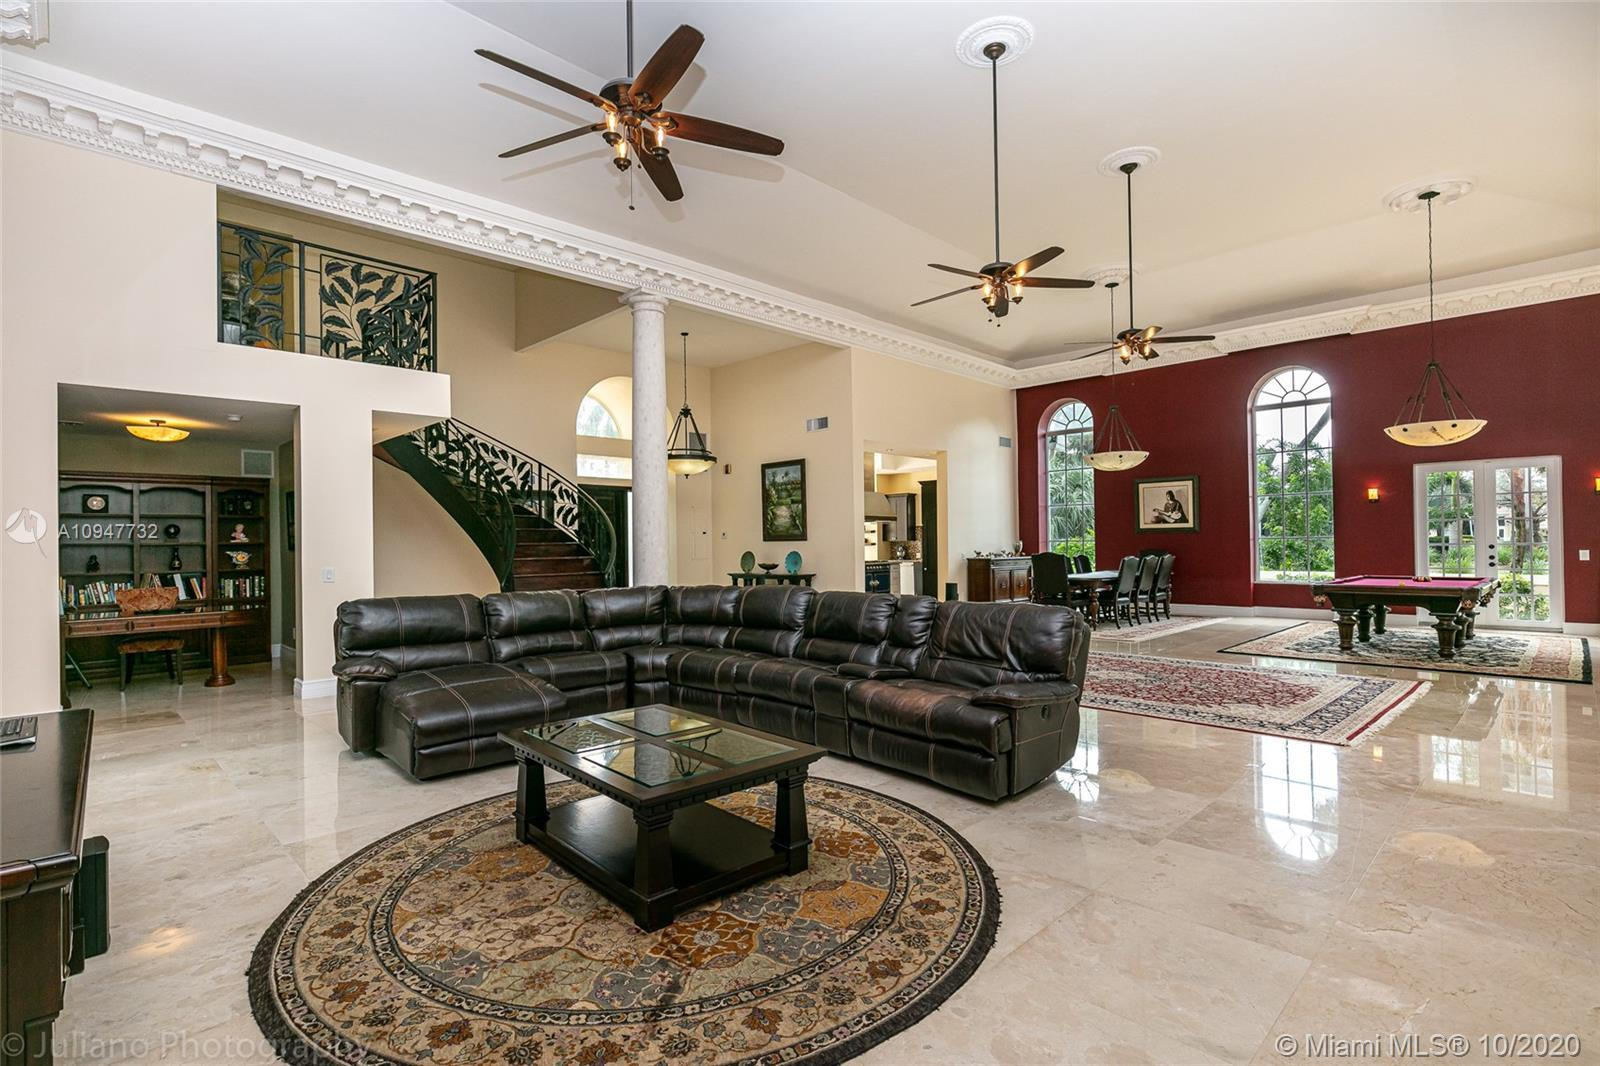 217 Thatch Palm Dr is a one of a kind home boasting an enormous great room along with 5 bedrooms and